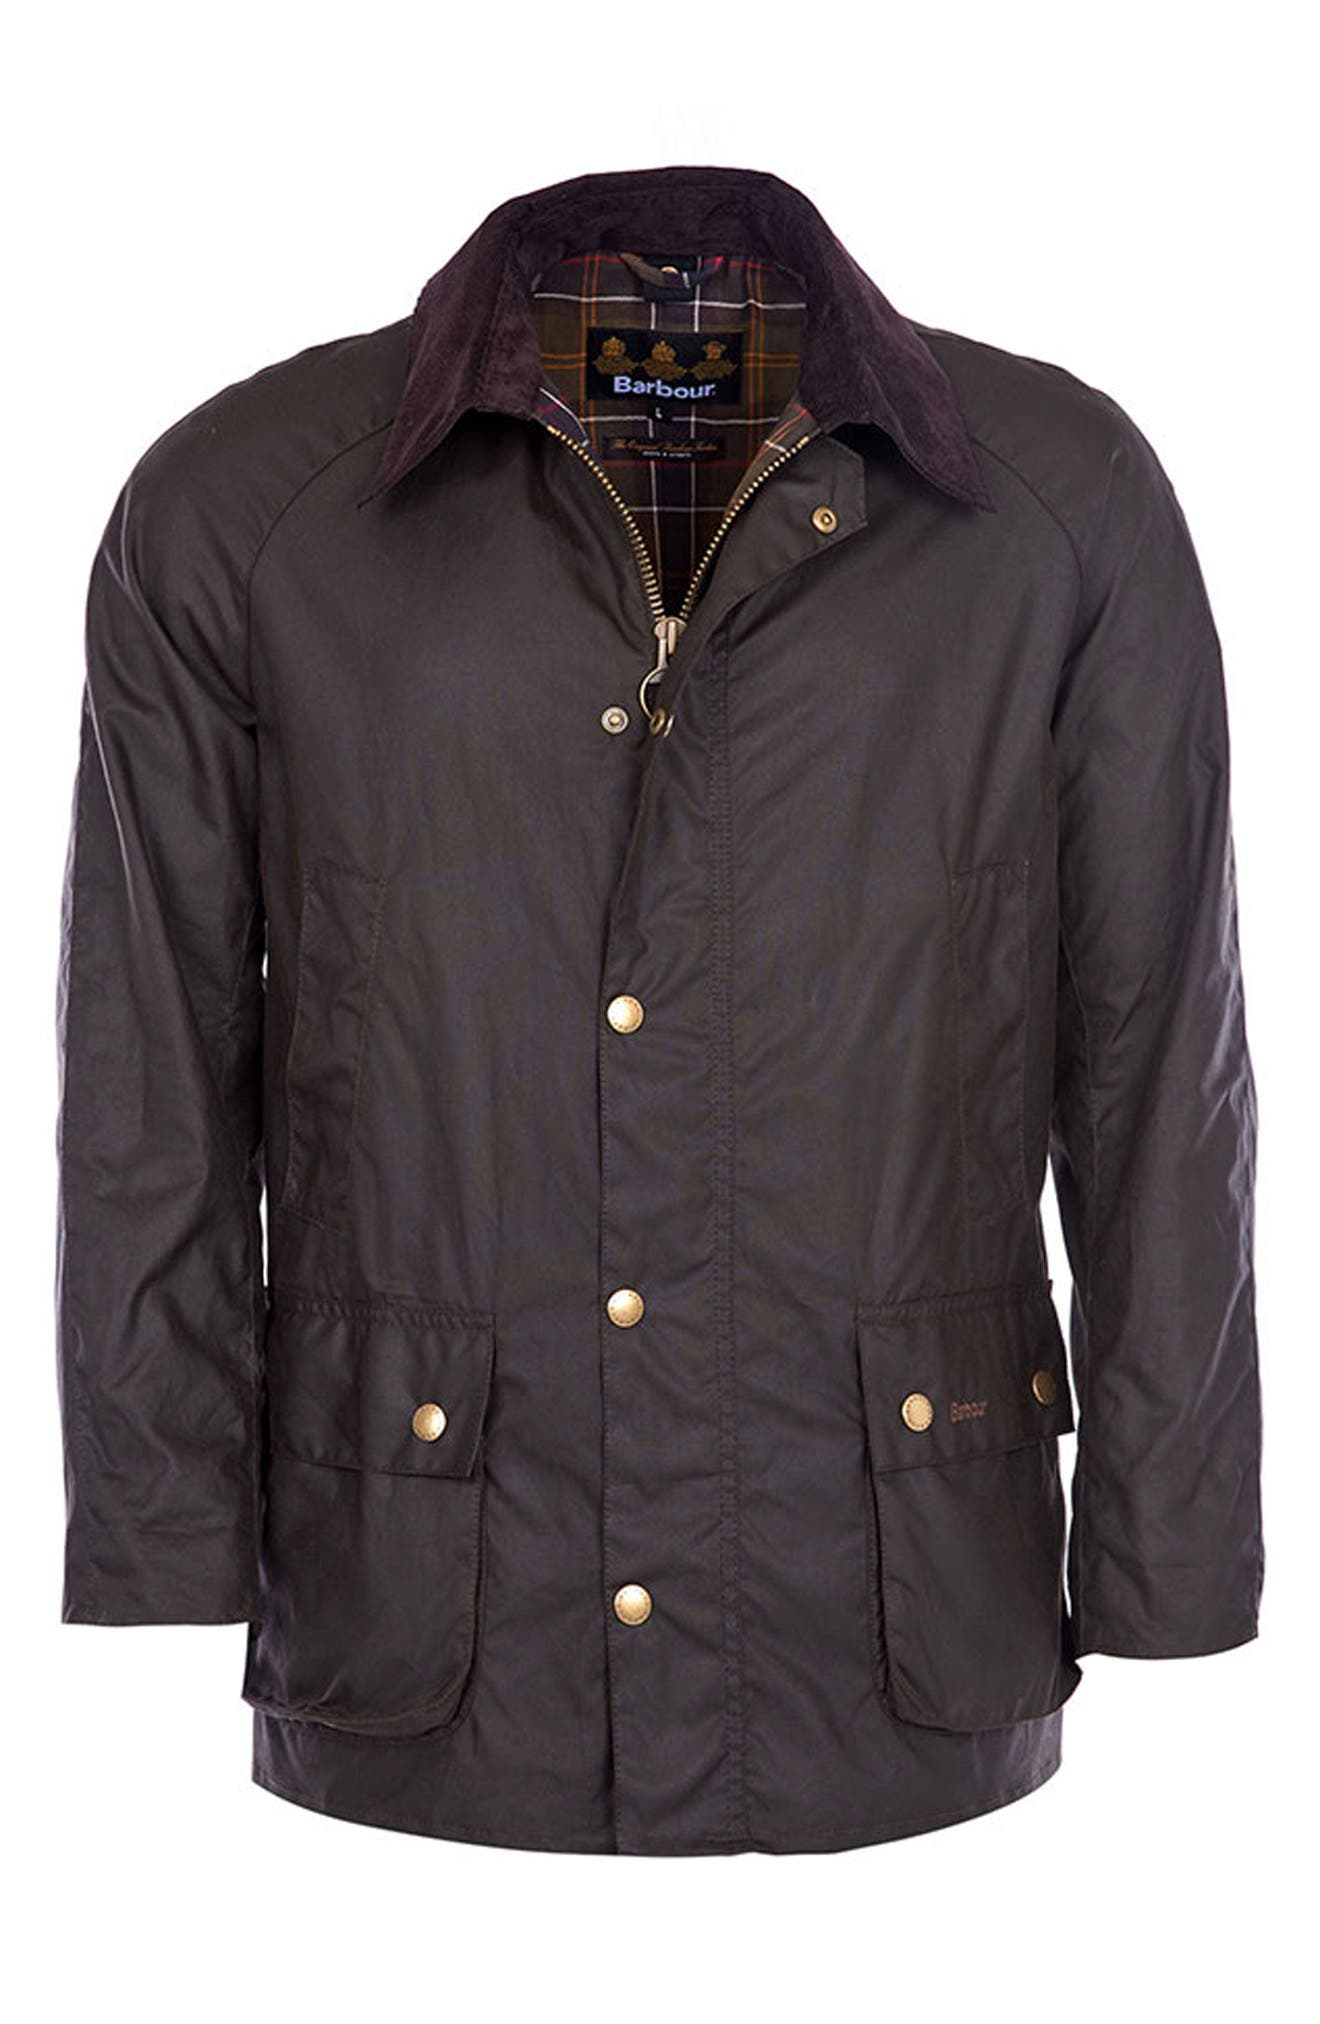 BARBOUR, Ashby Wax Jacket, Alternate thumbnail 10, color, OLIVE